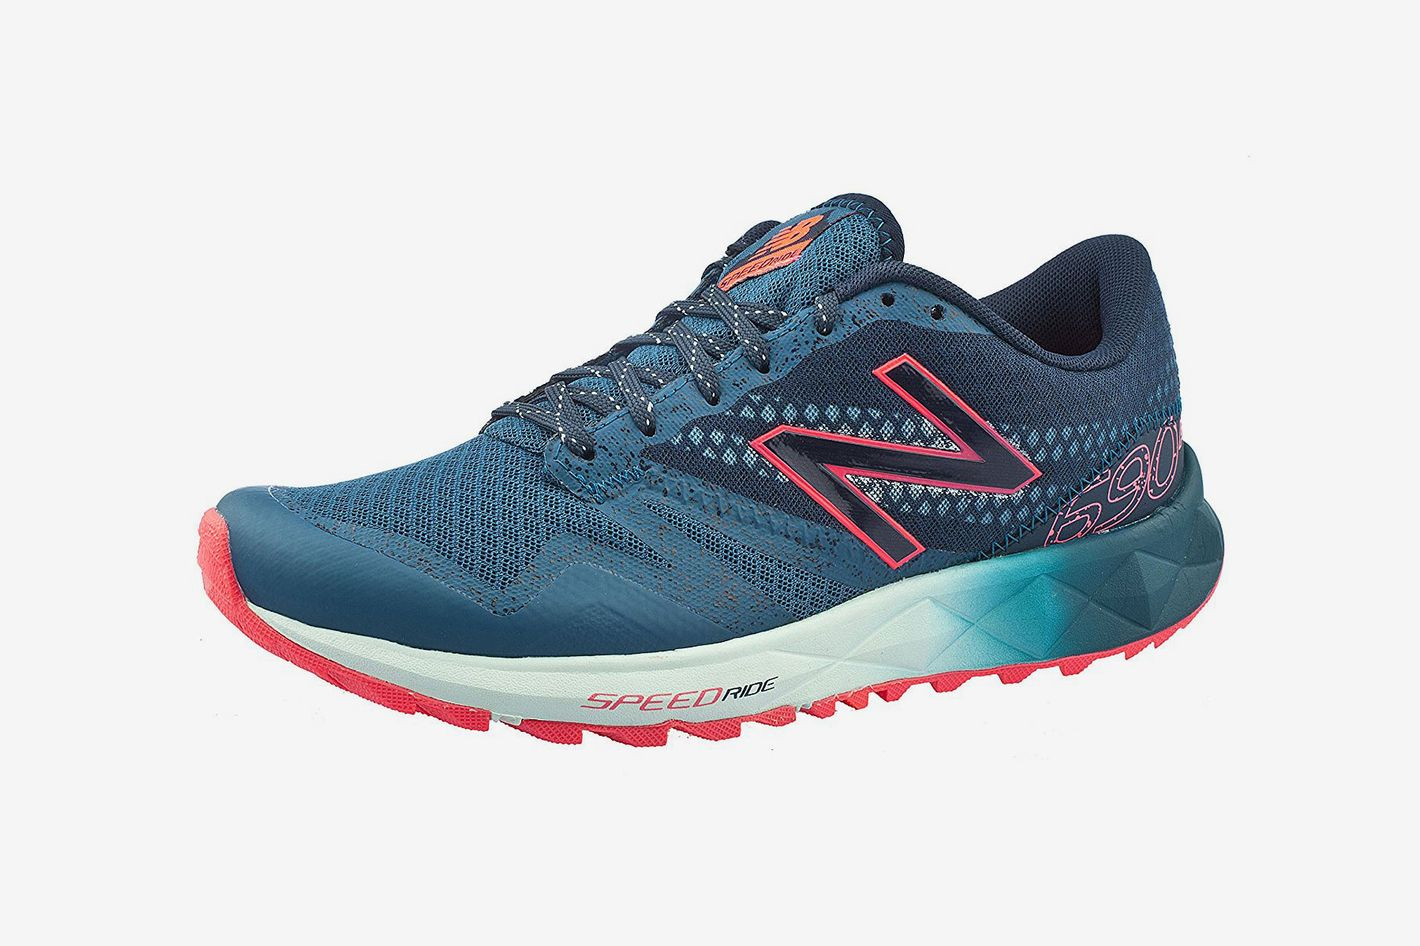 55fbe496f New Balance Women's wt690 Trail Running Sneaker